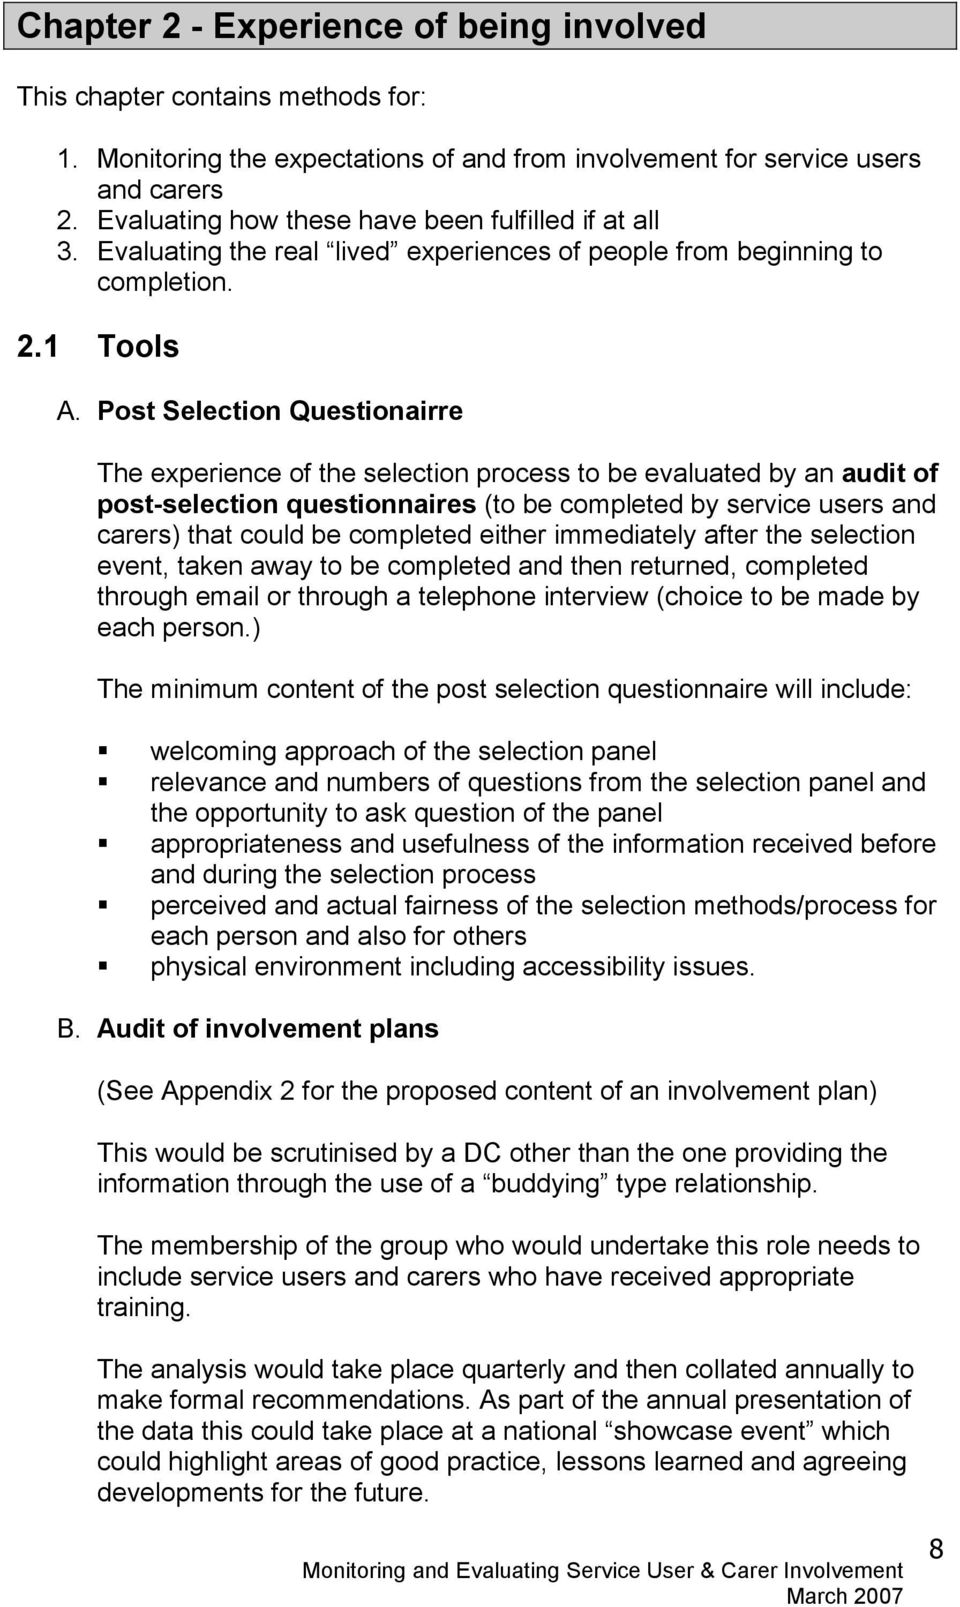 Post Selection Questionairre The experience of the selection process to be evaluated by an audit of post-selection questionnaires (to be completed by service users and carers) that could be completed